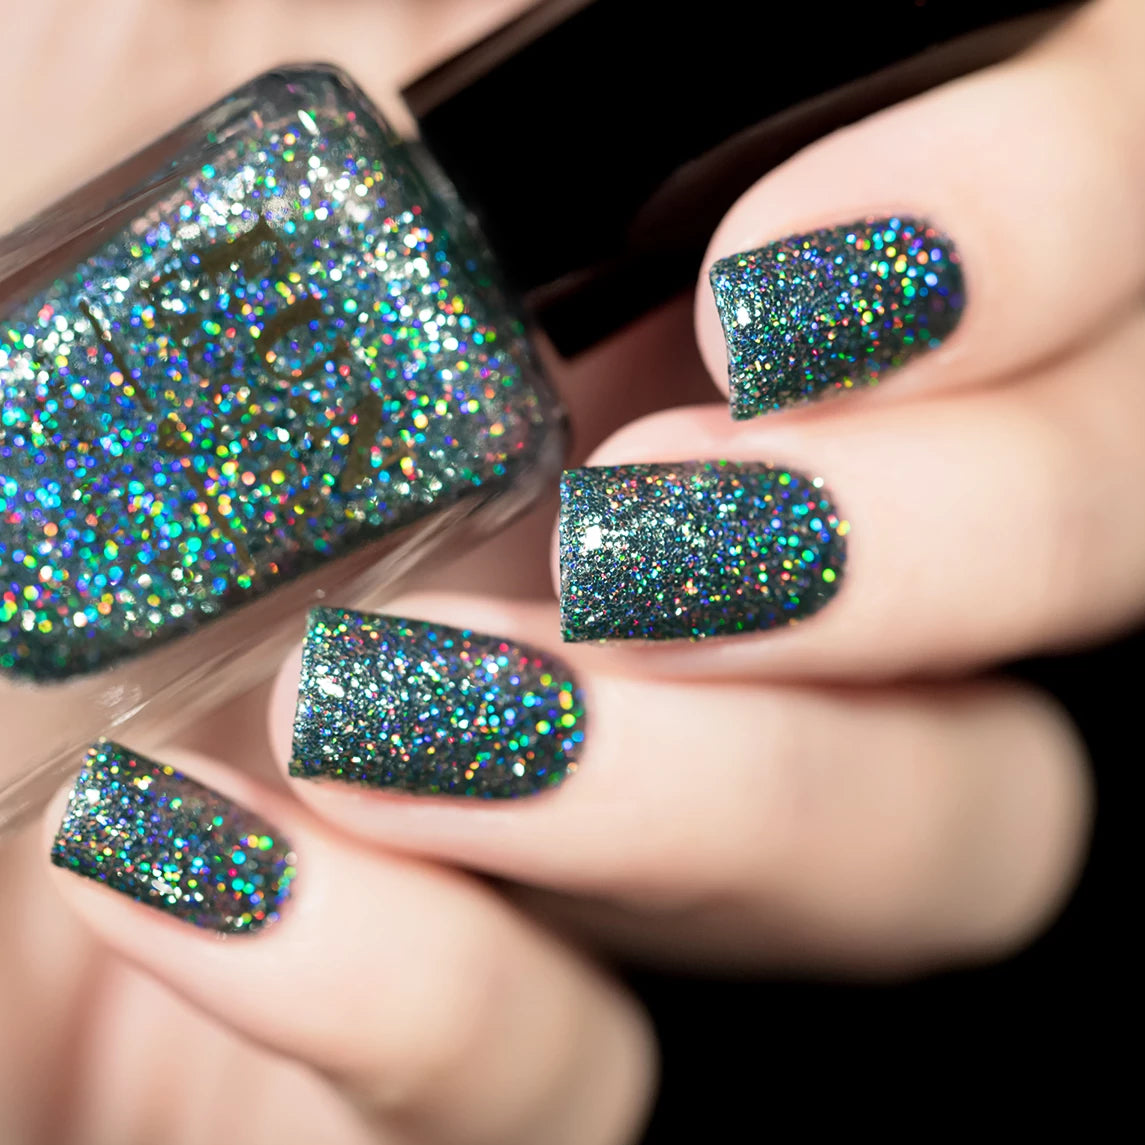 *PRE-SALE* F.U.N Lacquer - Do You Steel Love Me?